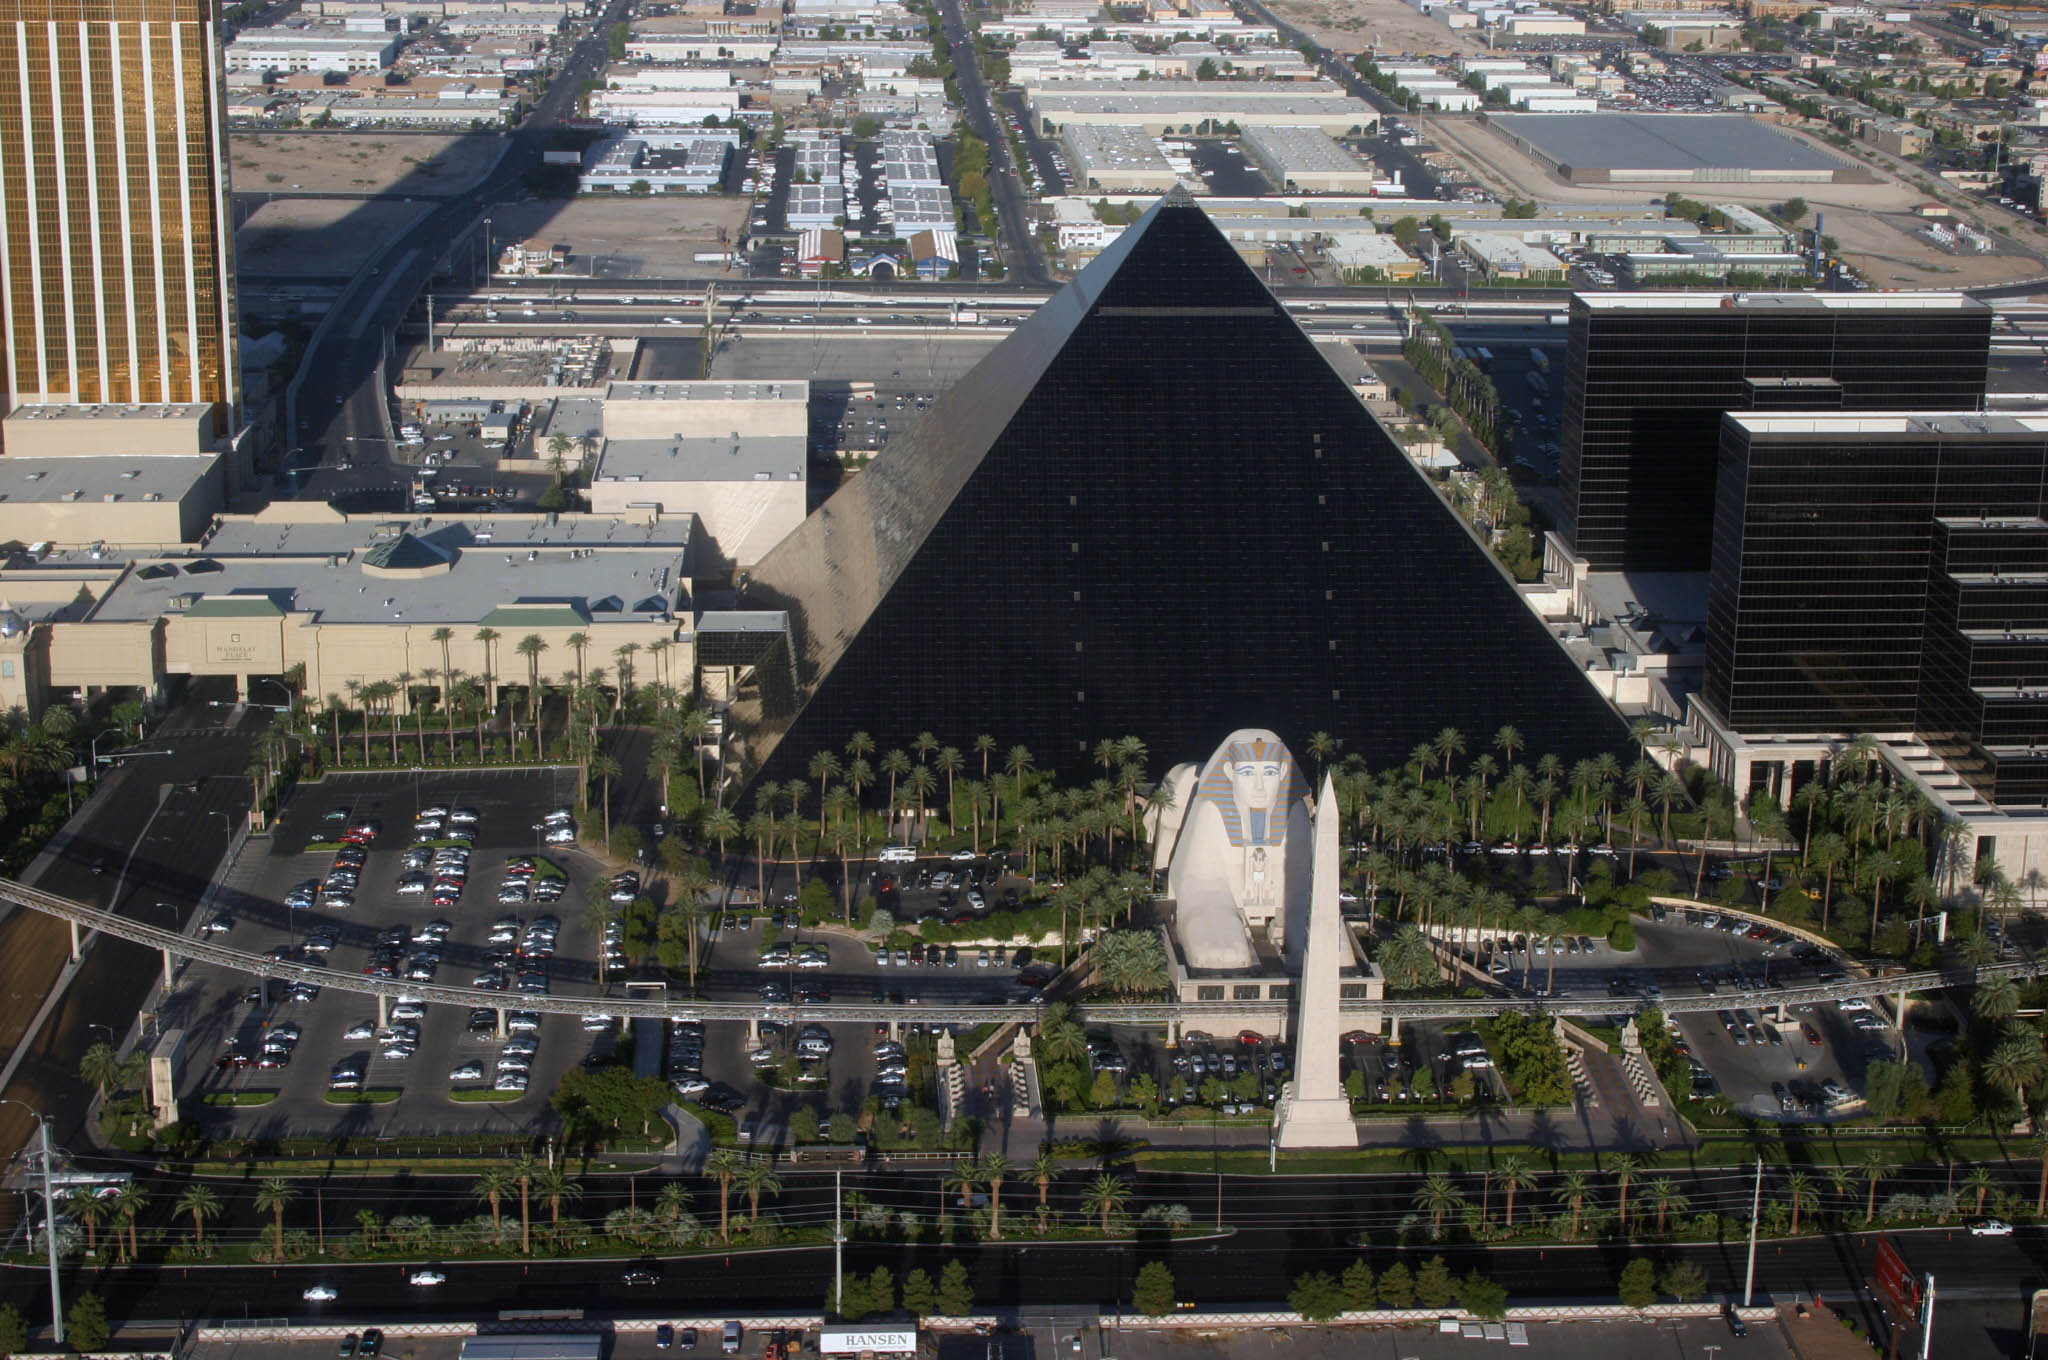 Luxor Las Vegas: 10 Crazy Facts About The Pyramid Hotel ...